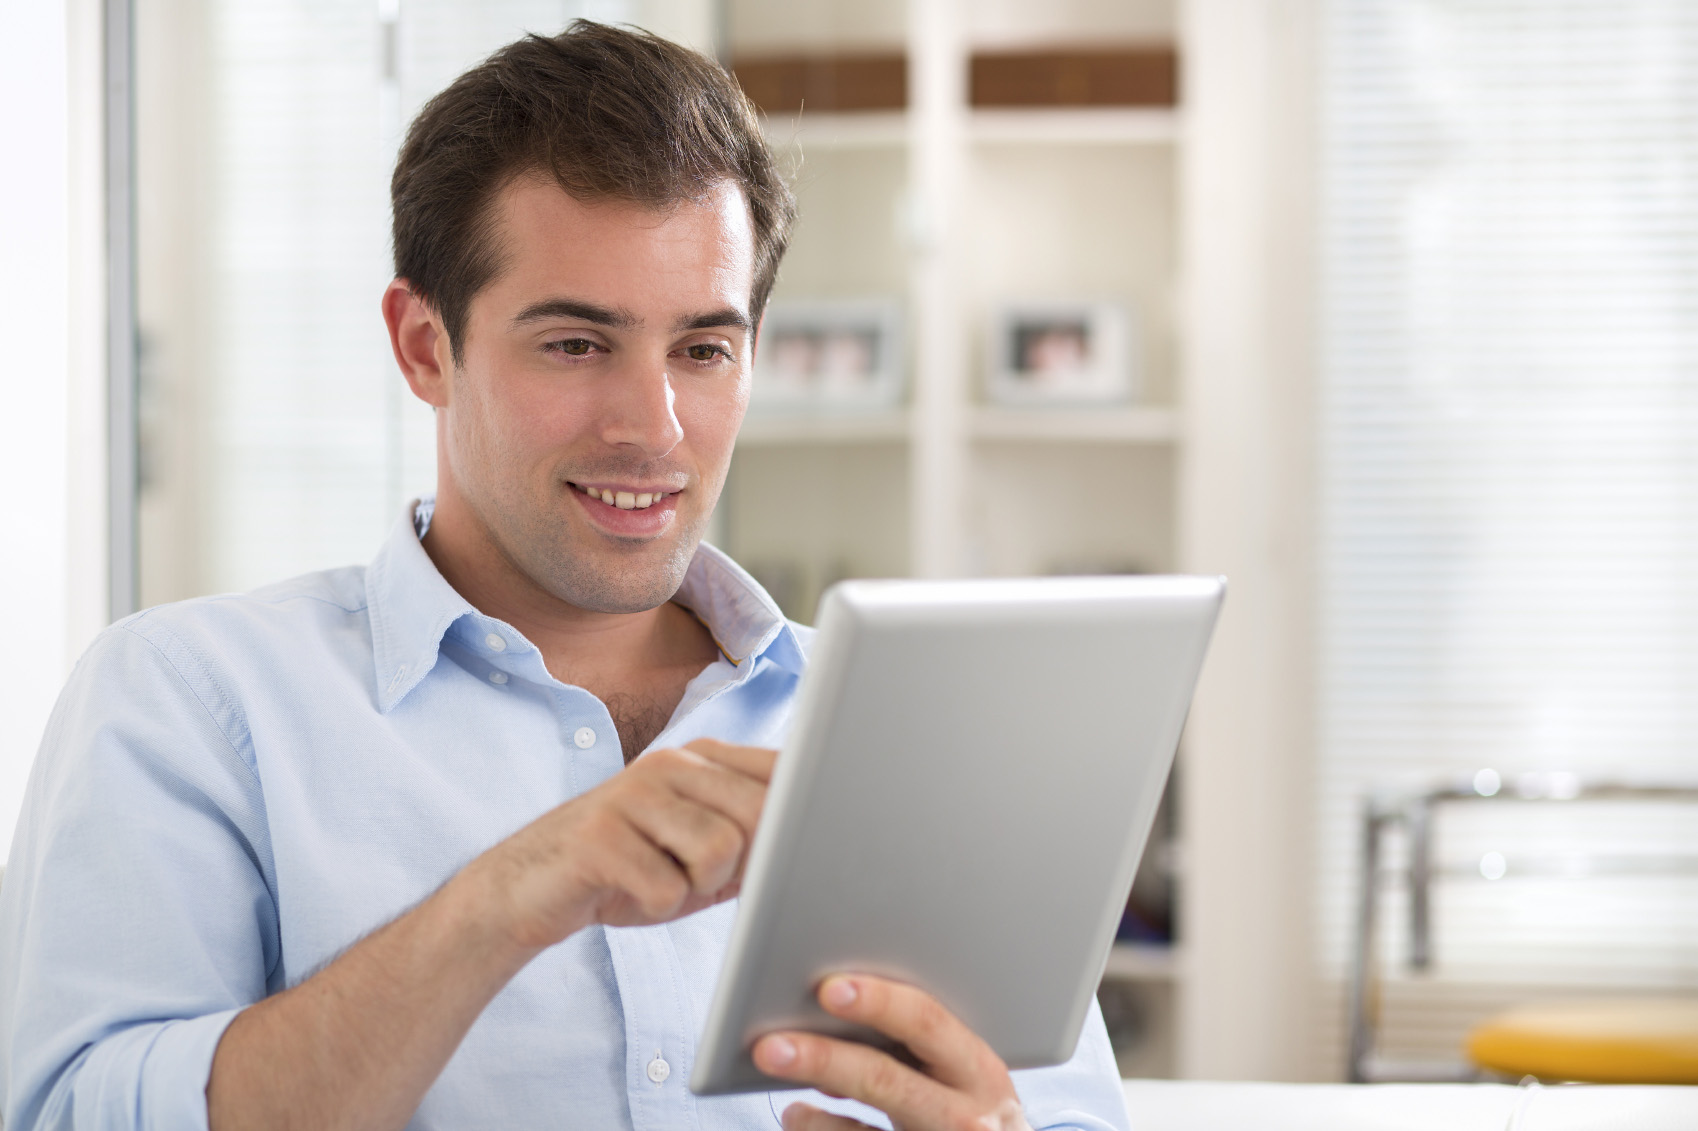 Man using tablet pc on couch at home